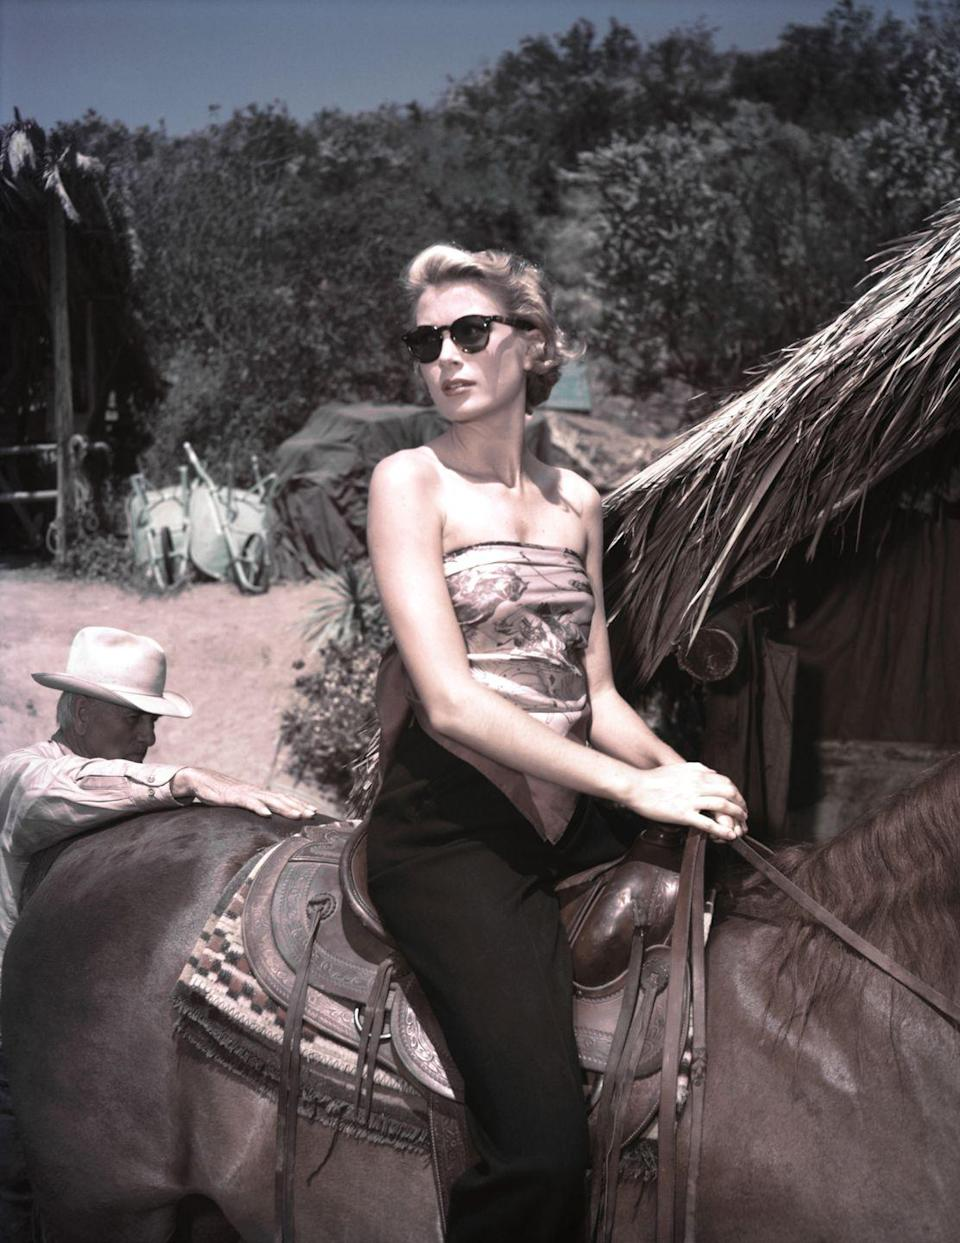 <p>Kelly rides horseback on location in Equatorial Africa in 1953 for her film, <em>Mogambo. </em>The picture earned her an Academy Award nomination for best supporting actress. </p>